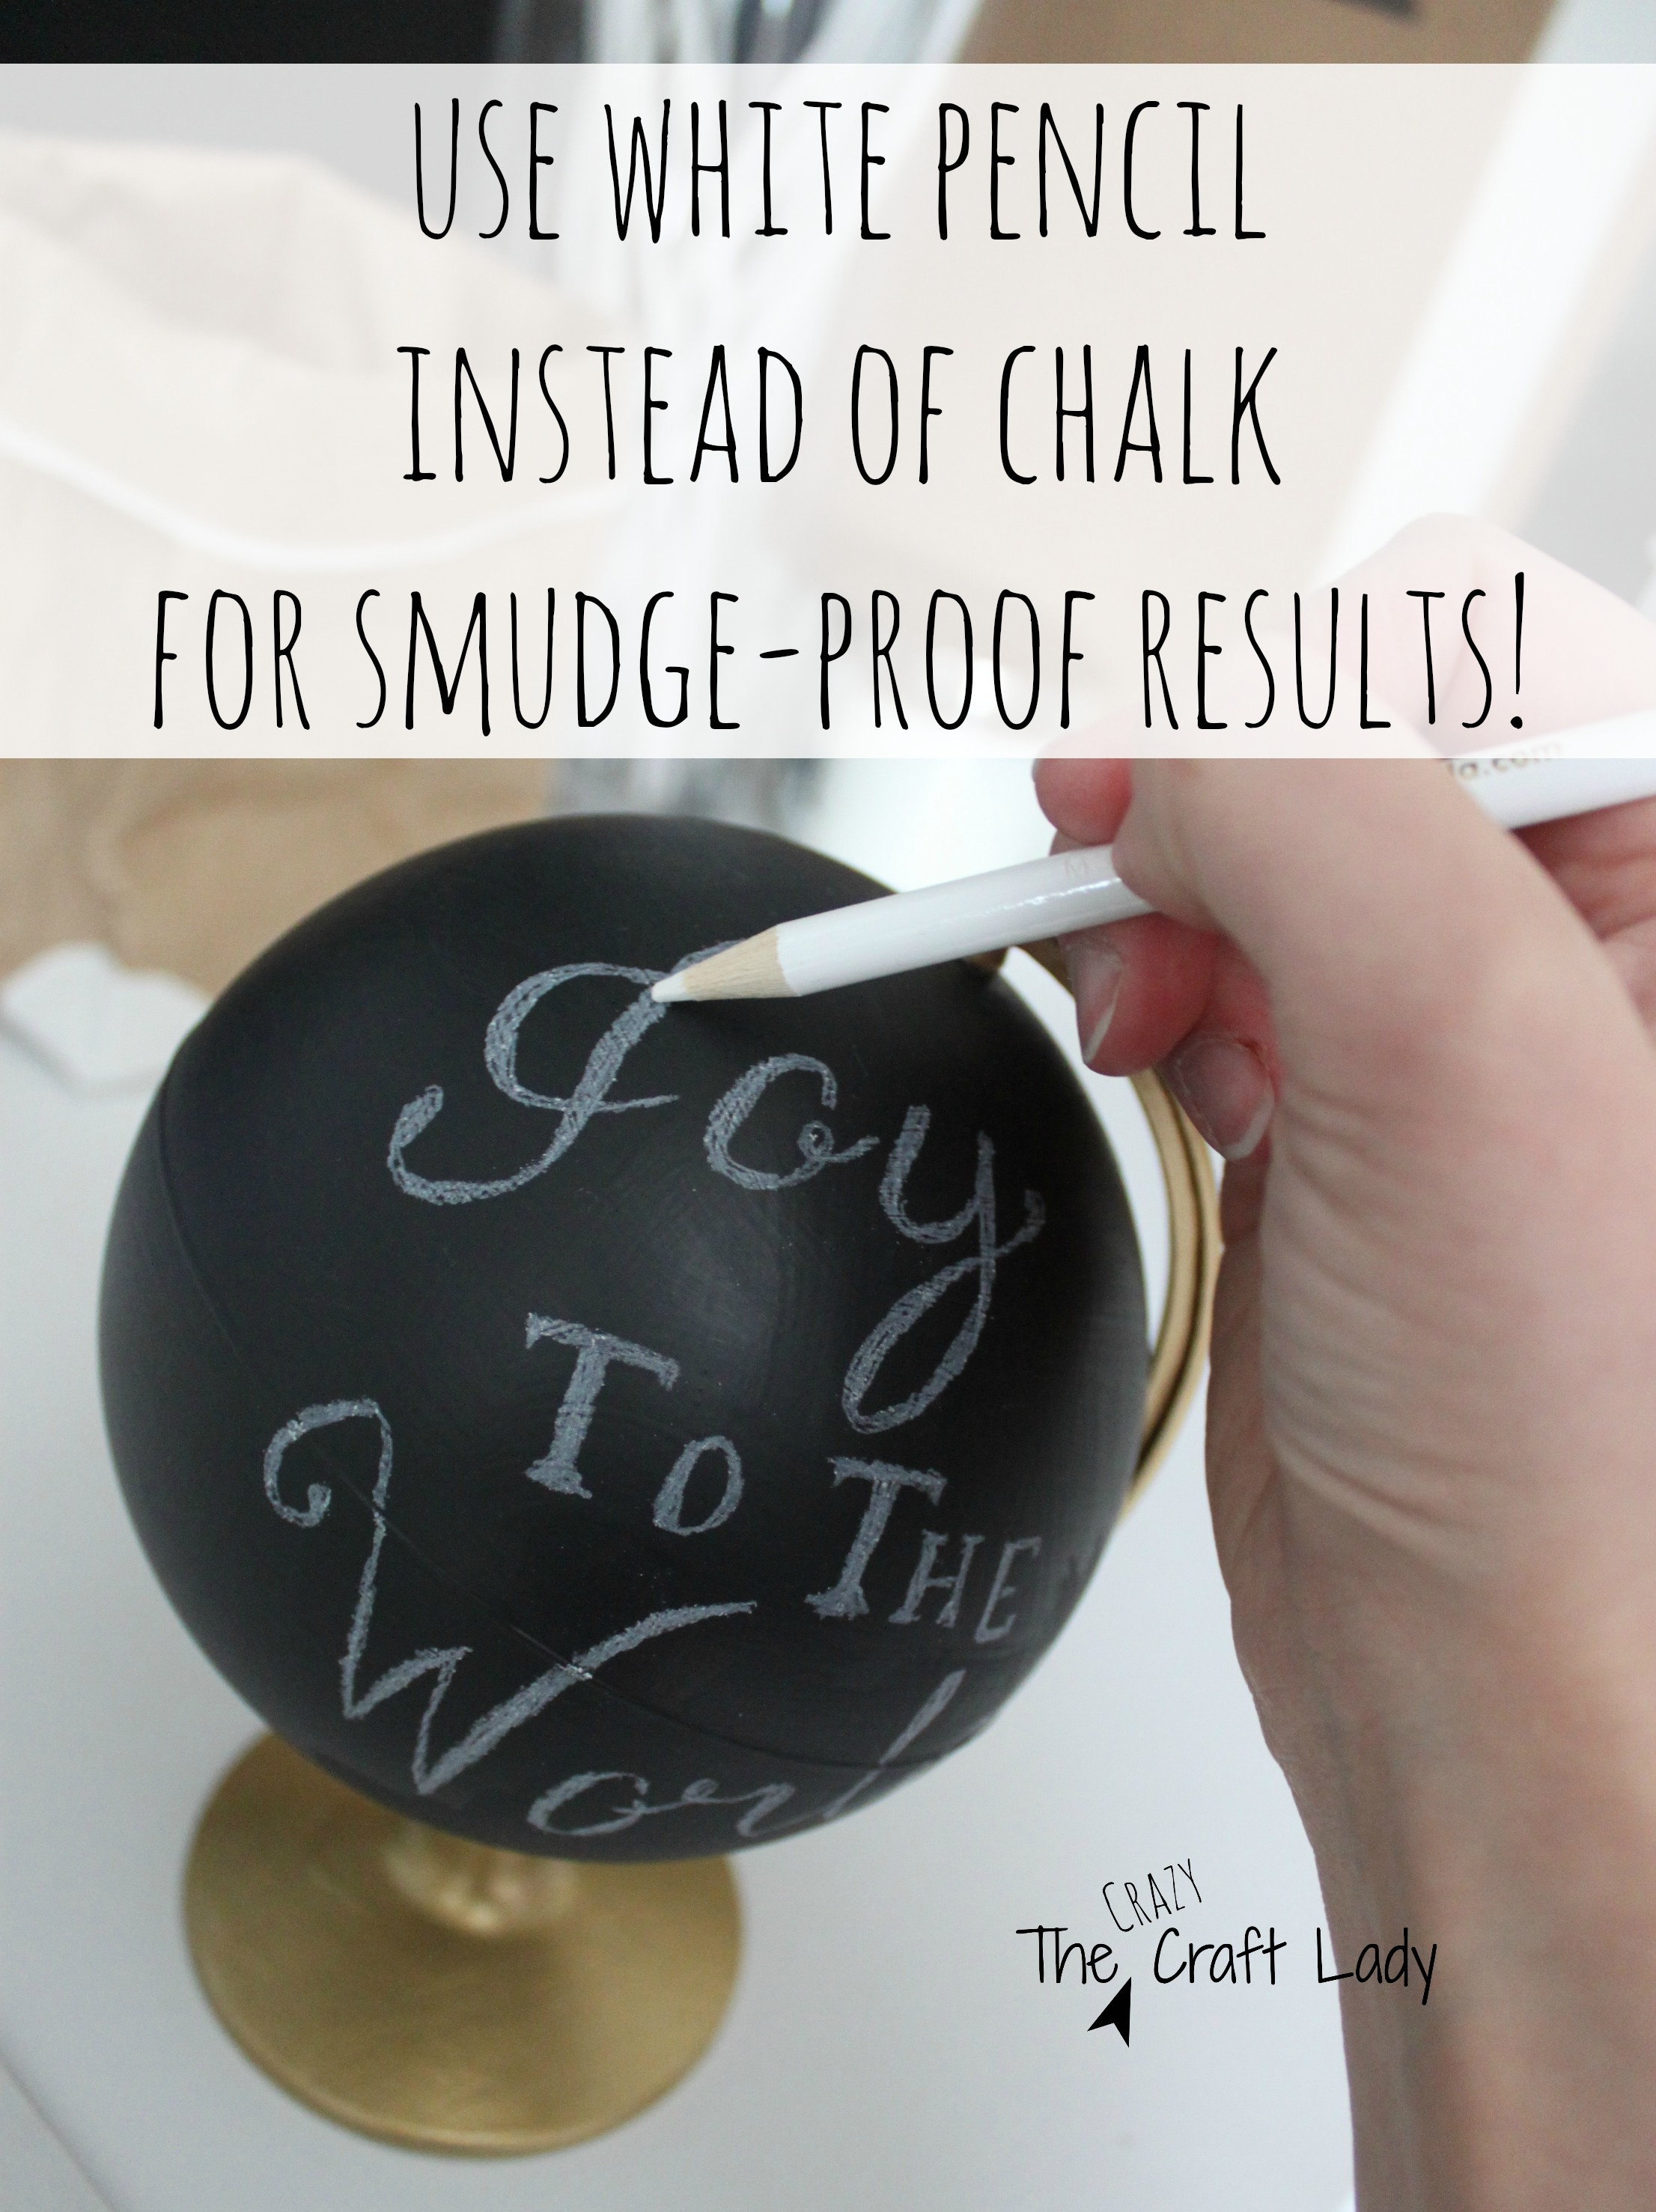 When making a chalkboard project that you don't want to smudge, use white pencil instead of chalk.